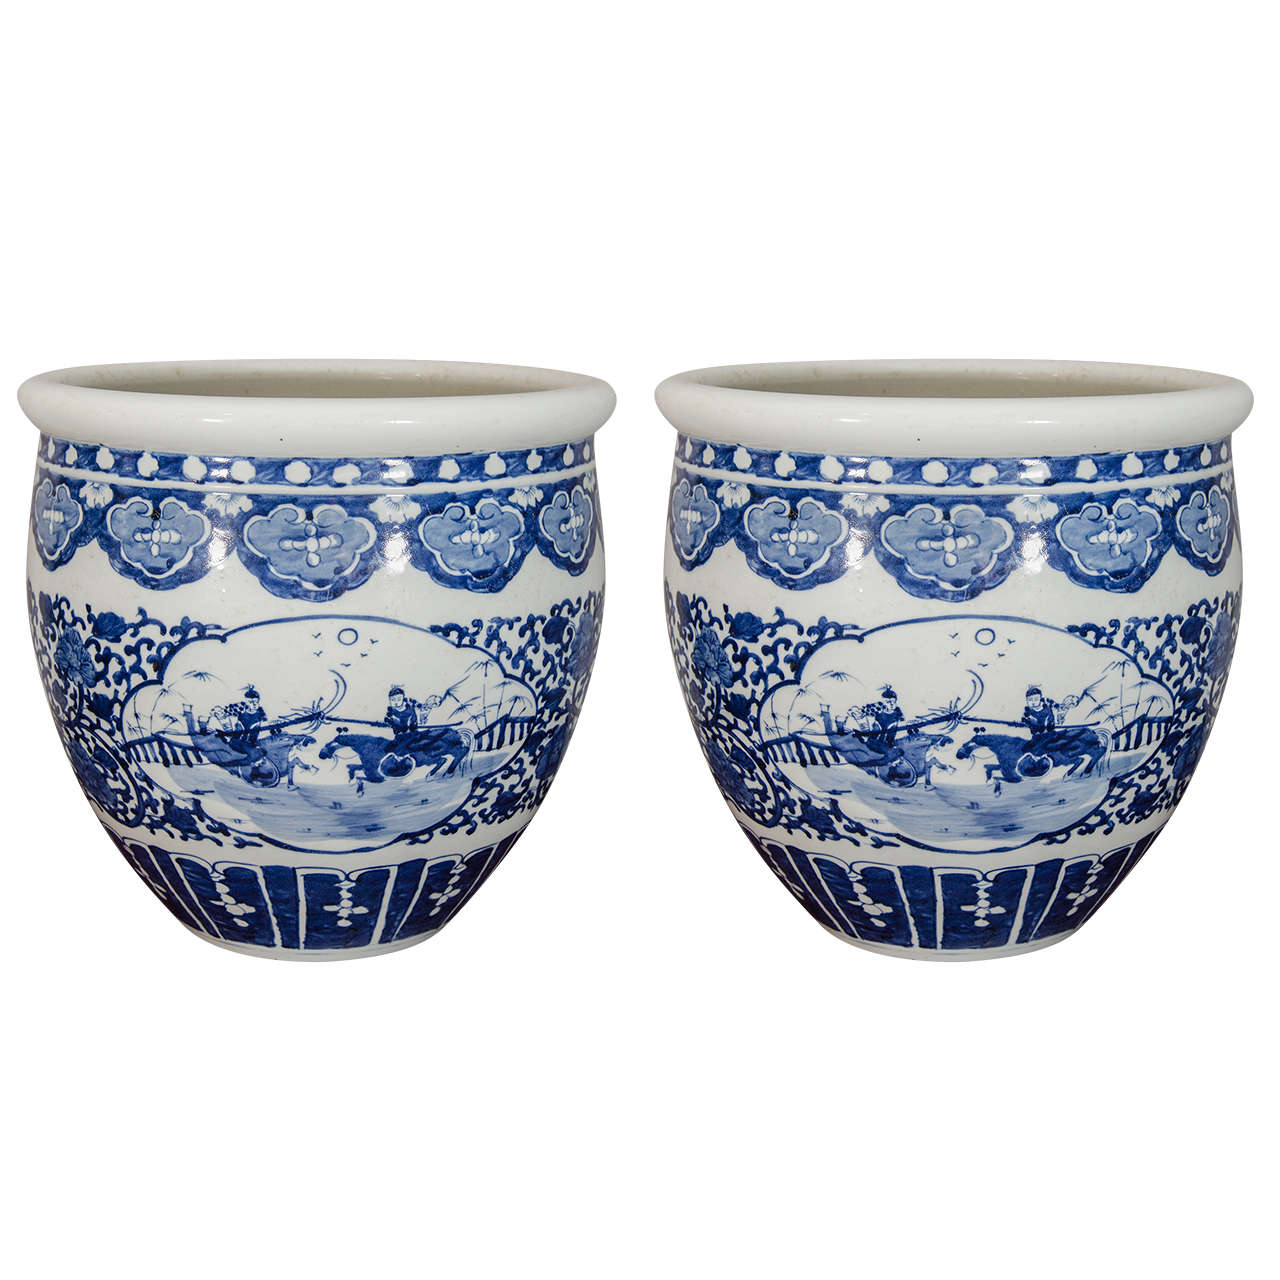 Pair Of Chinese Blue And White Porcelain Fish Bowl Planters For Sale